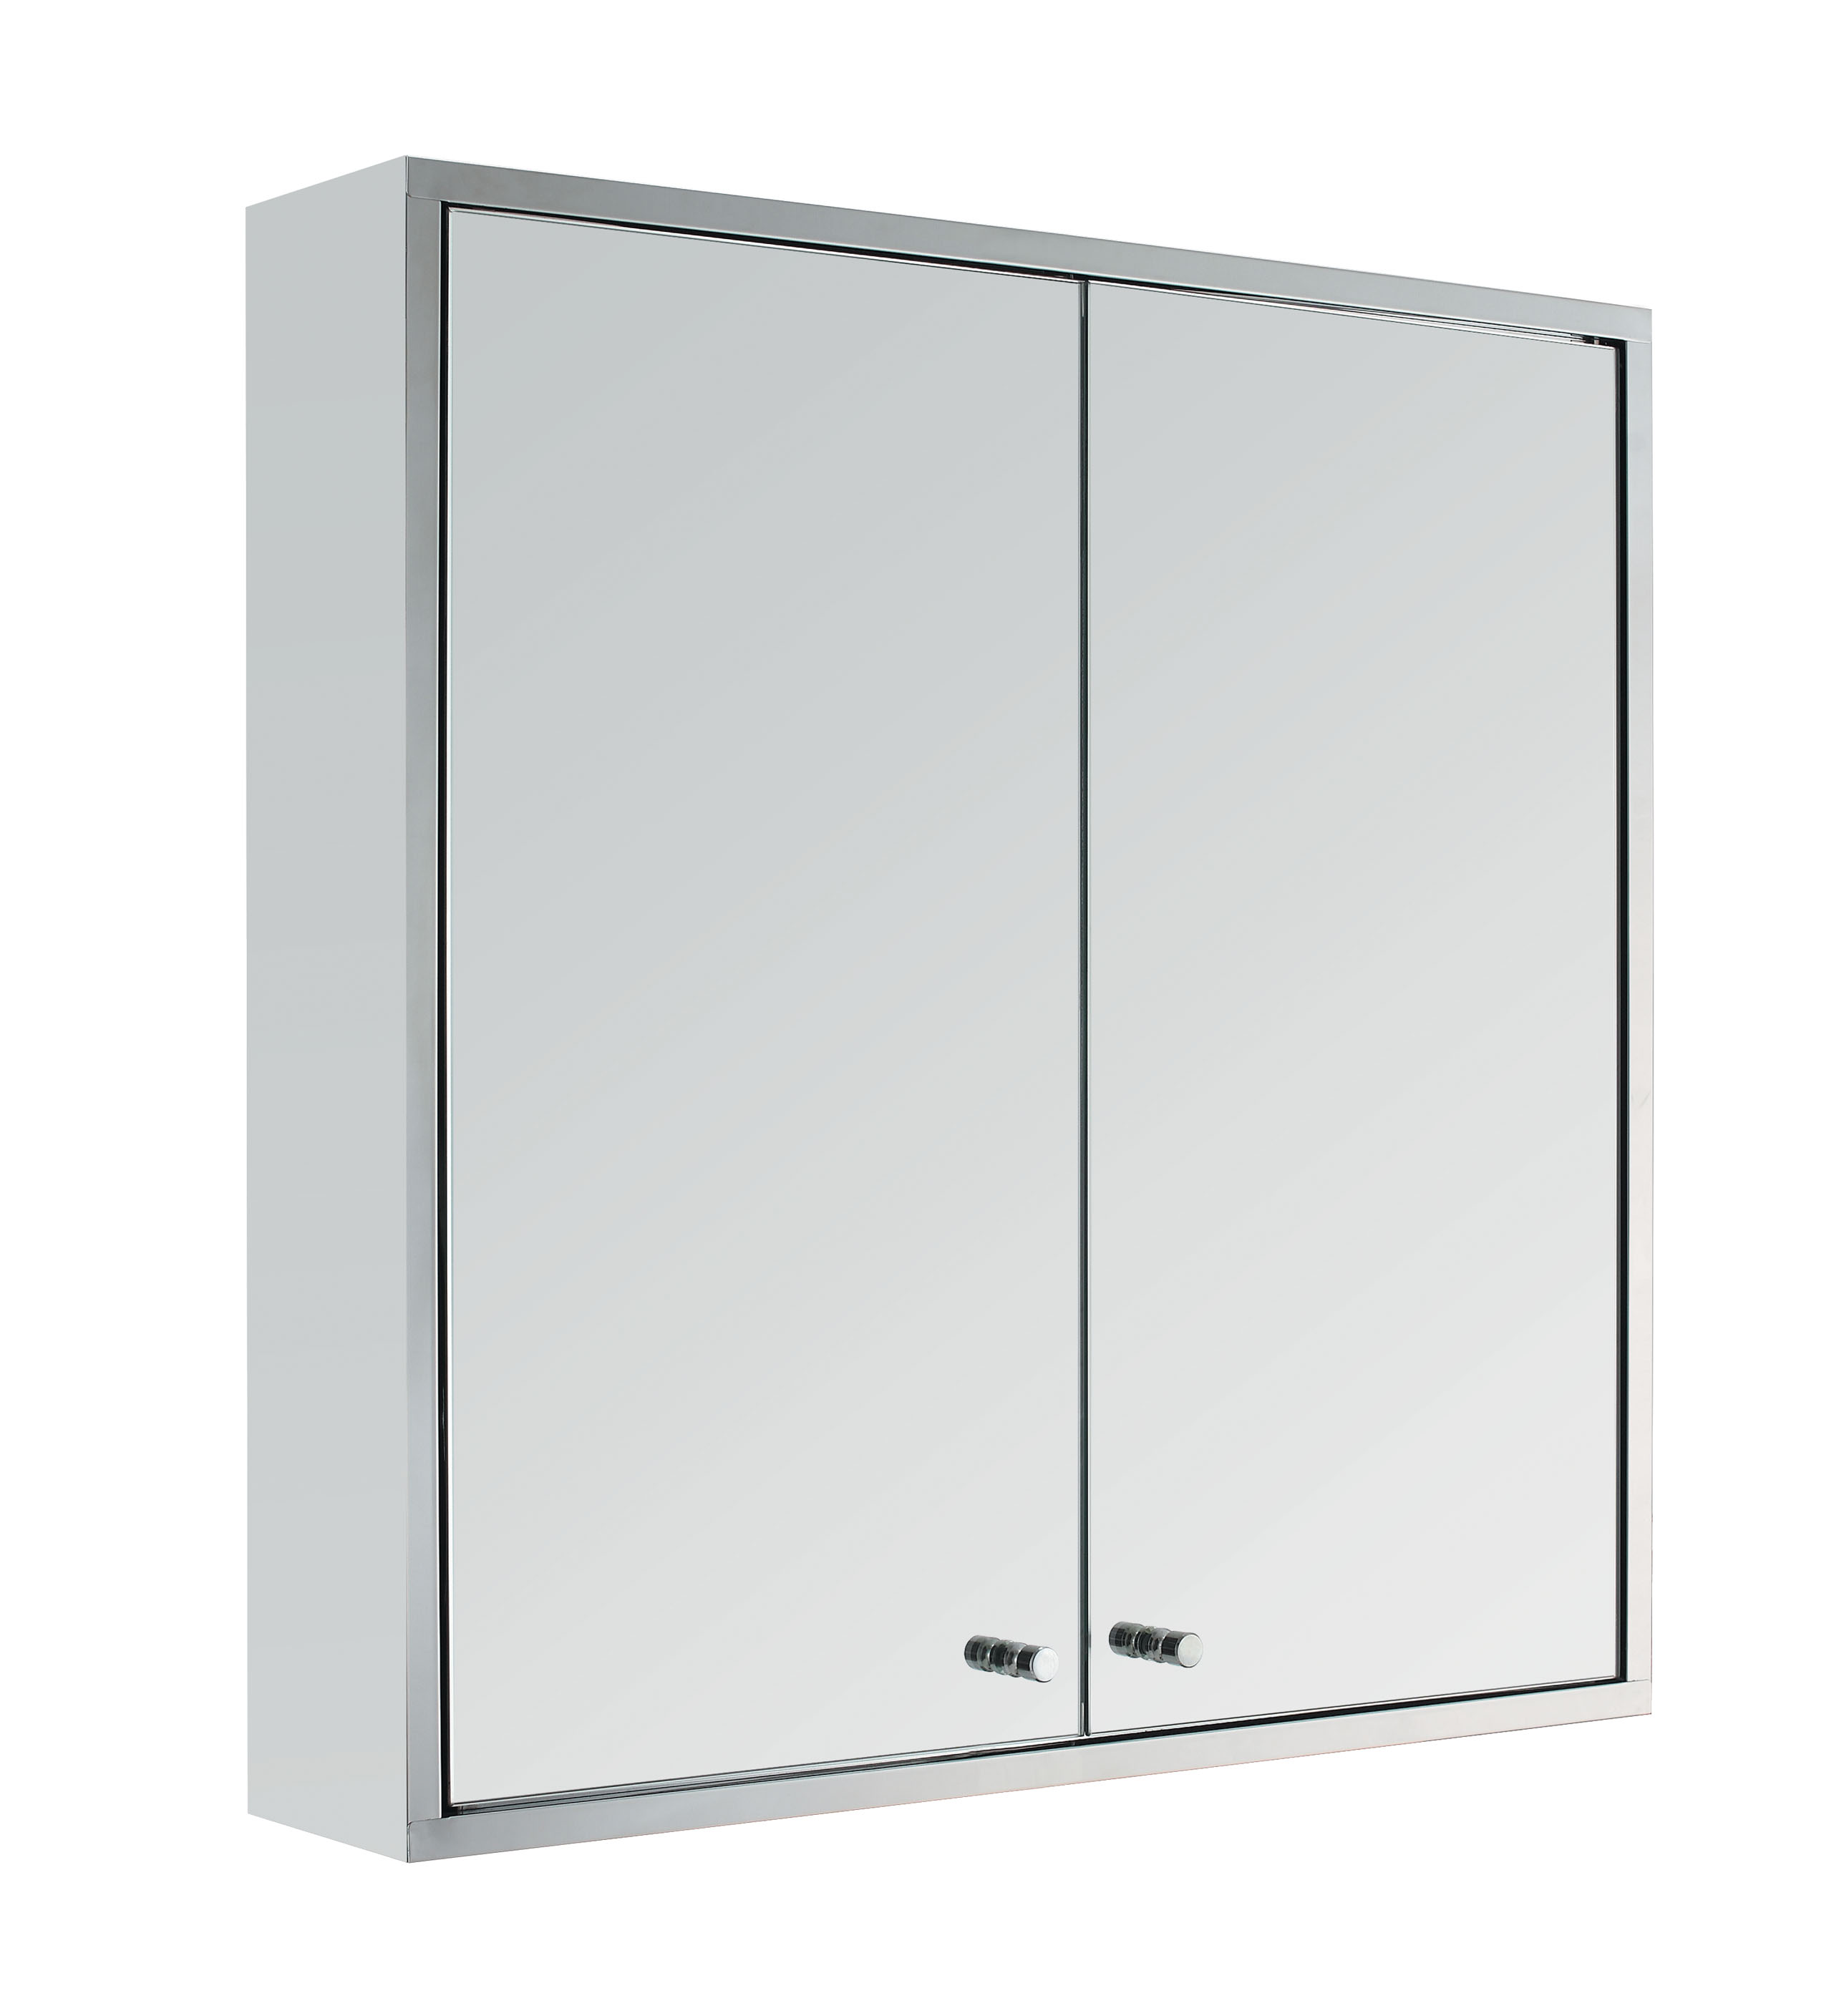 Bathroom Storage Cupboards Two Door Classic Bathroom Wall Storage Cabinet W Shelves White Ebay